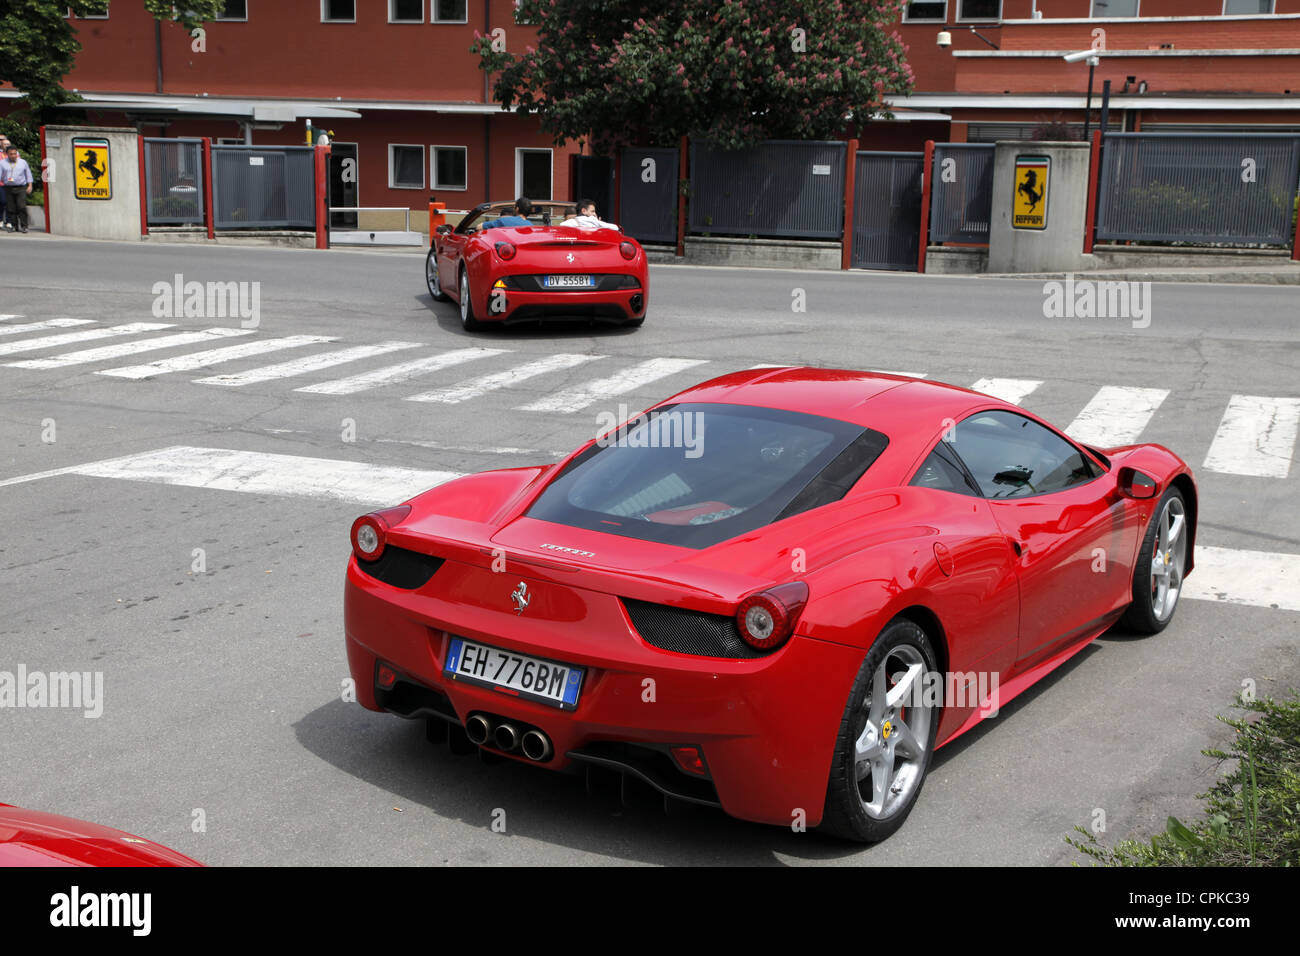 Rouge Ferrari 458 voitures & PORTES D'USINE MARANELLO ITALIE 08 Mai 2012 Photo Stock